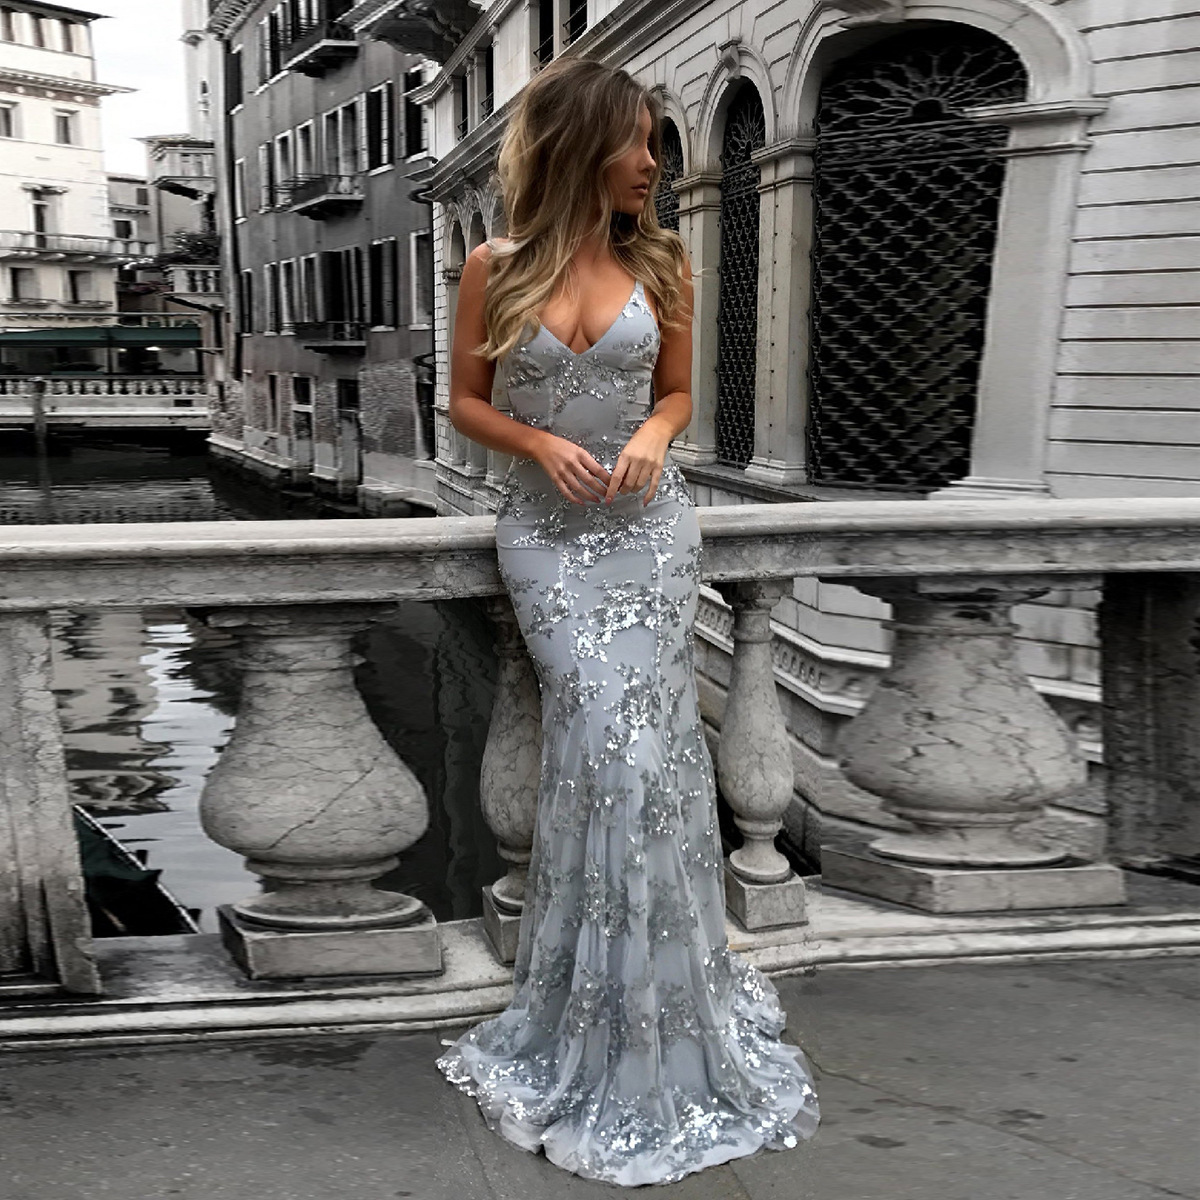 Evening Party Long Dress Slimming Sexy Tail With Flower Decoration Wedding Adult Ritual Sequin